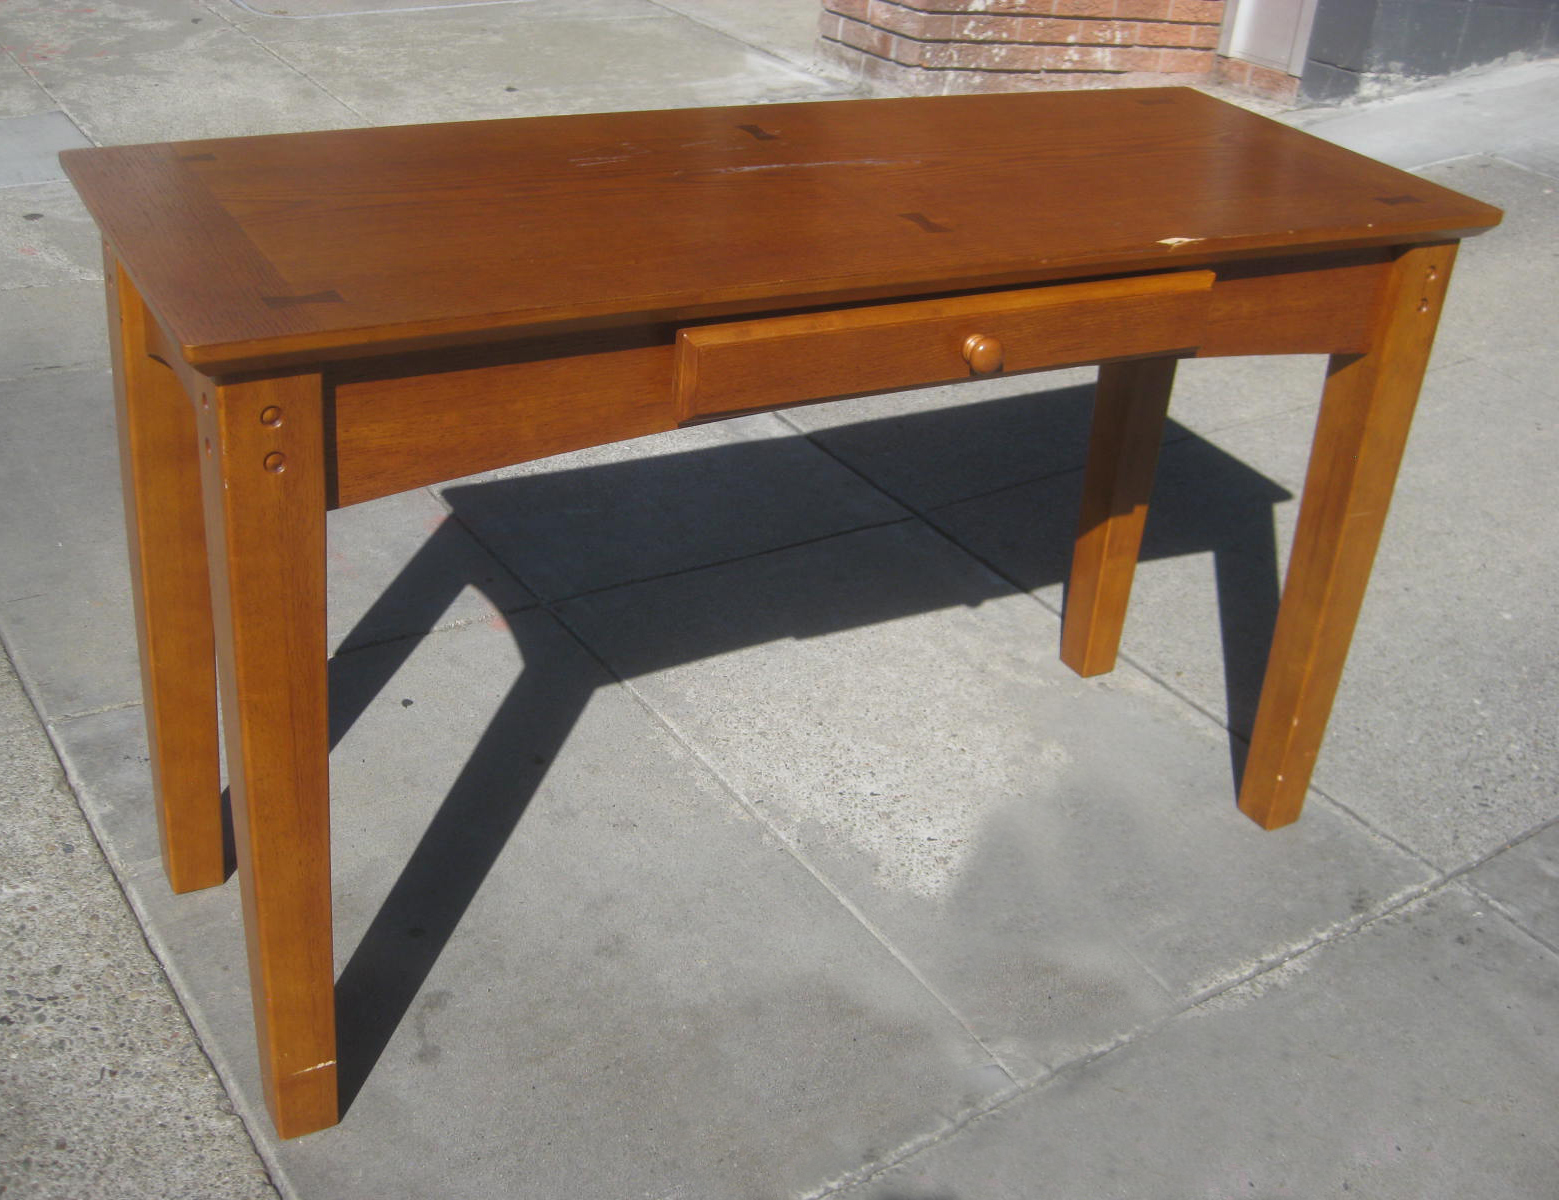 uhuru furniture collectibles sold mission style desk 60